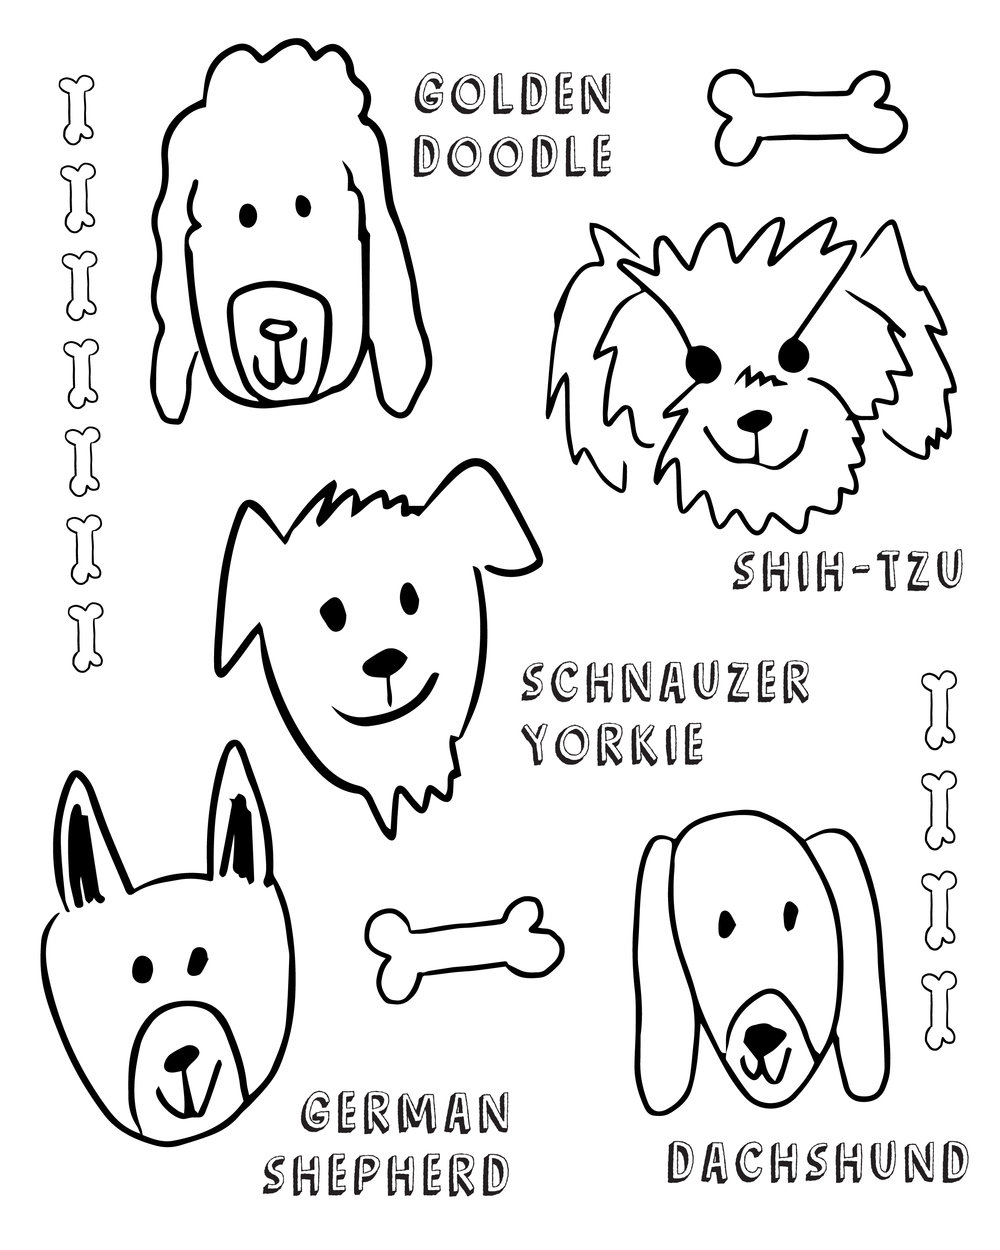 coloring page golden doodle shih tzu diagram - Shih Tzu Coloring Pages